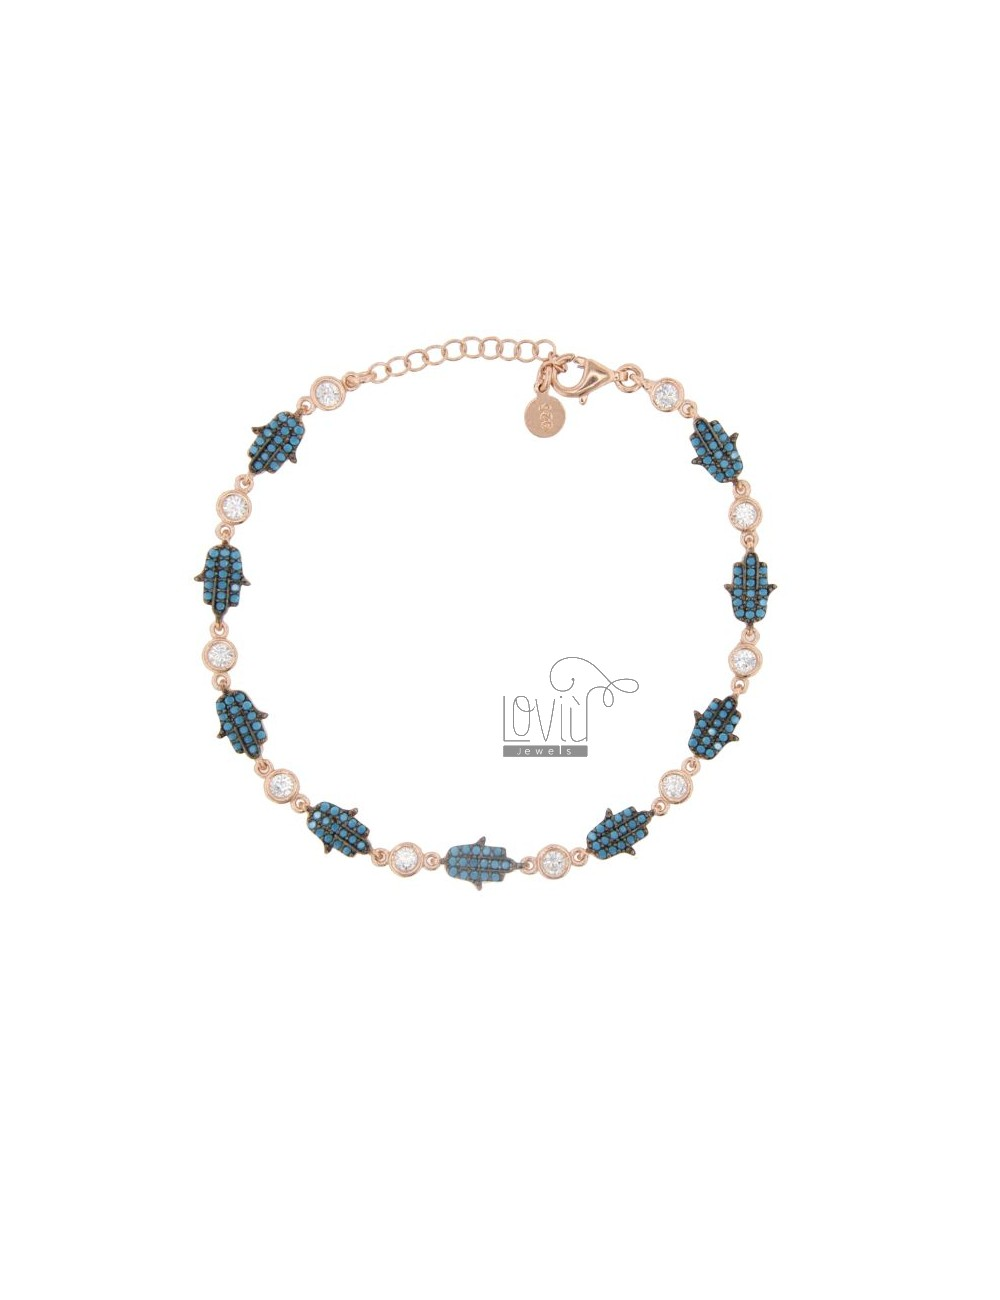 FATIMA HAND BRACELET IN SILVER ROSE TIT 925 AND COLORED ZIRCONIA 18-20 CM